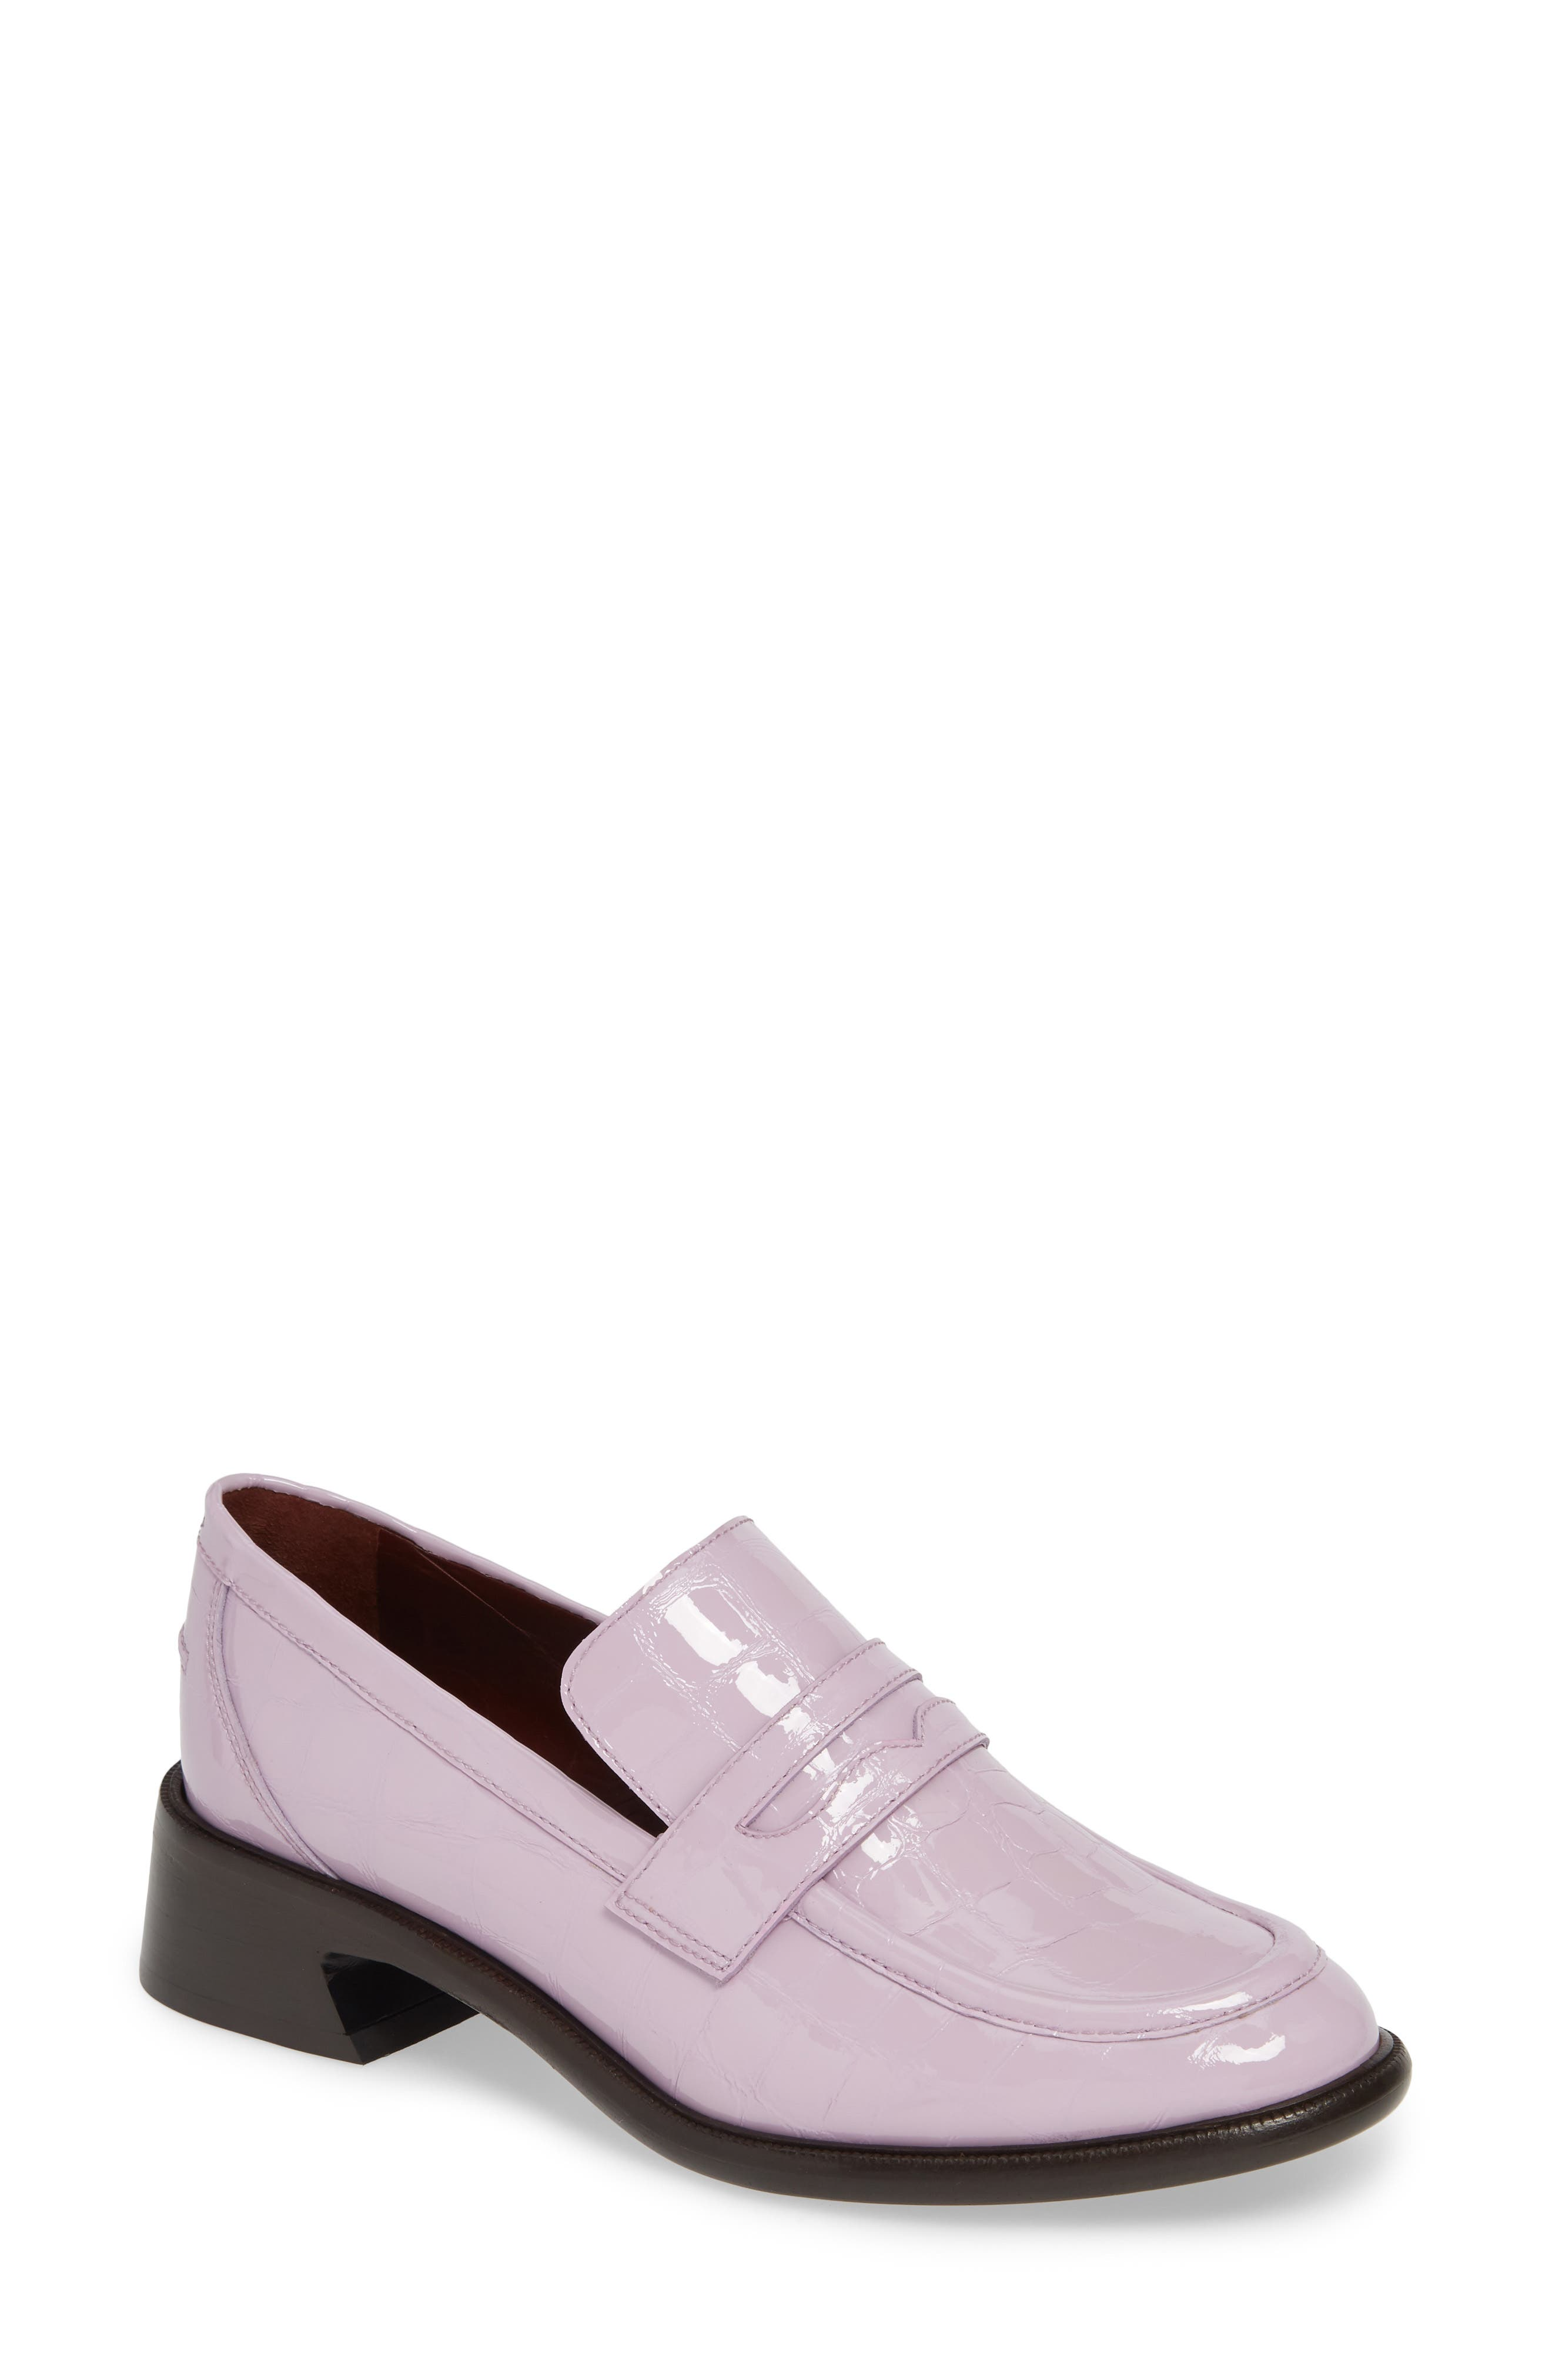 Croc Embossed Loafer in Pink